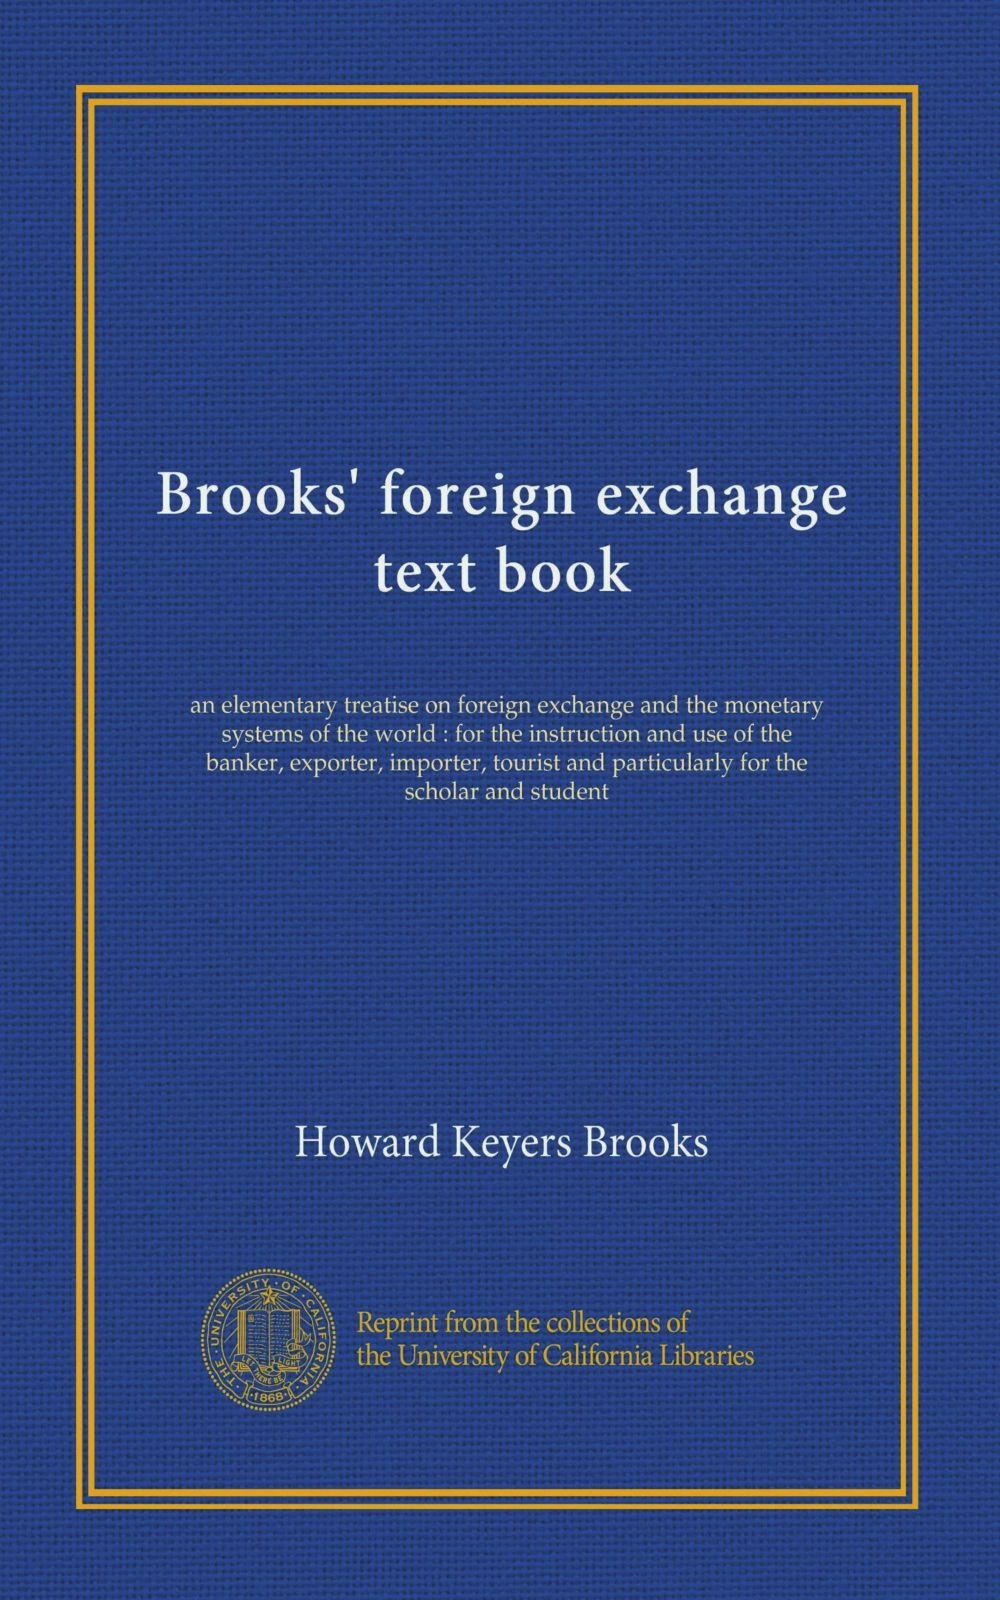 Brooks' foreign exchange text book: an elementary treatise on foreign exchange and the monetary systems of the world : for the instruction and use of ... and particularly for the scholar and student